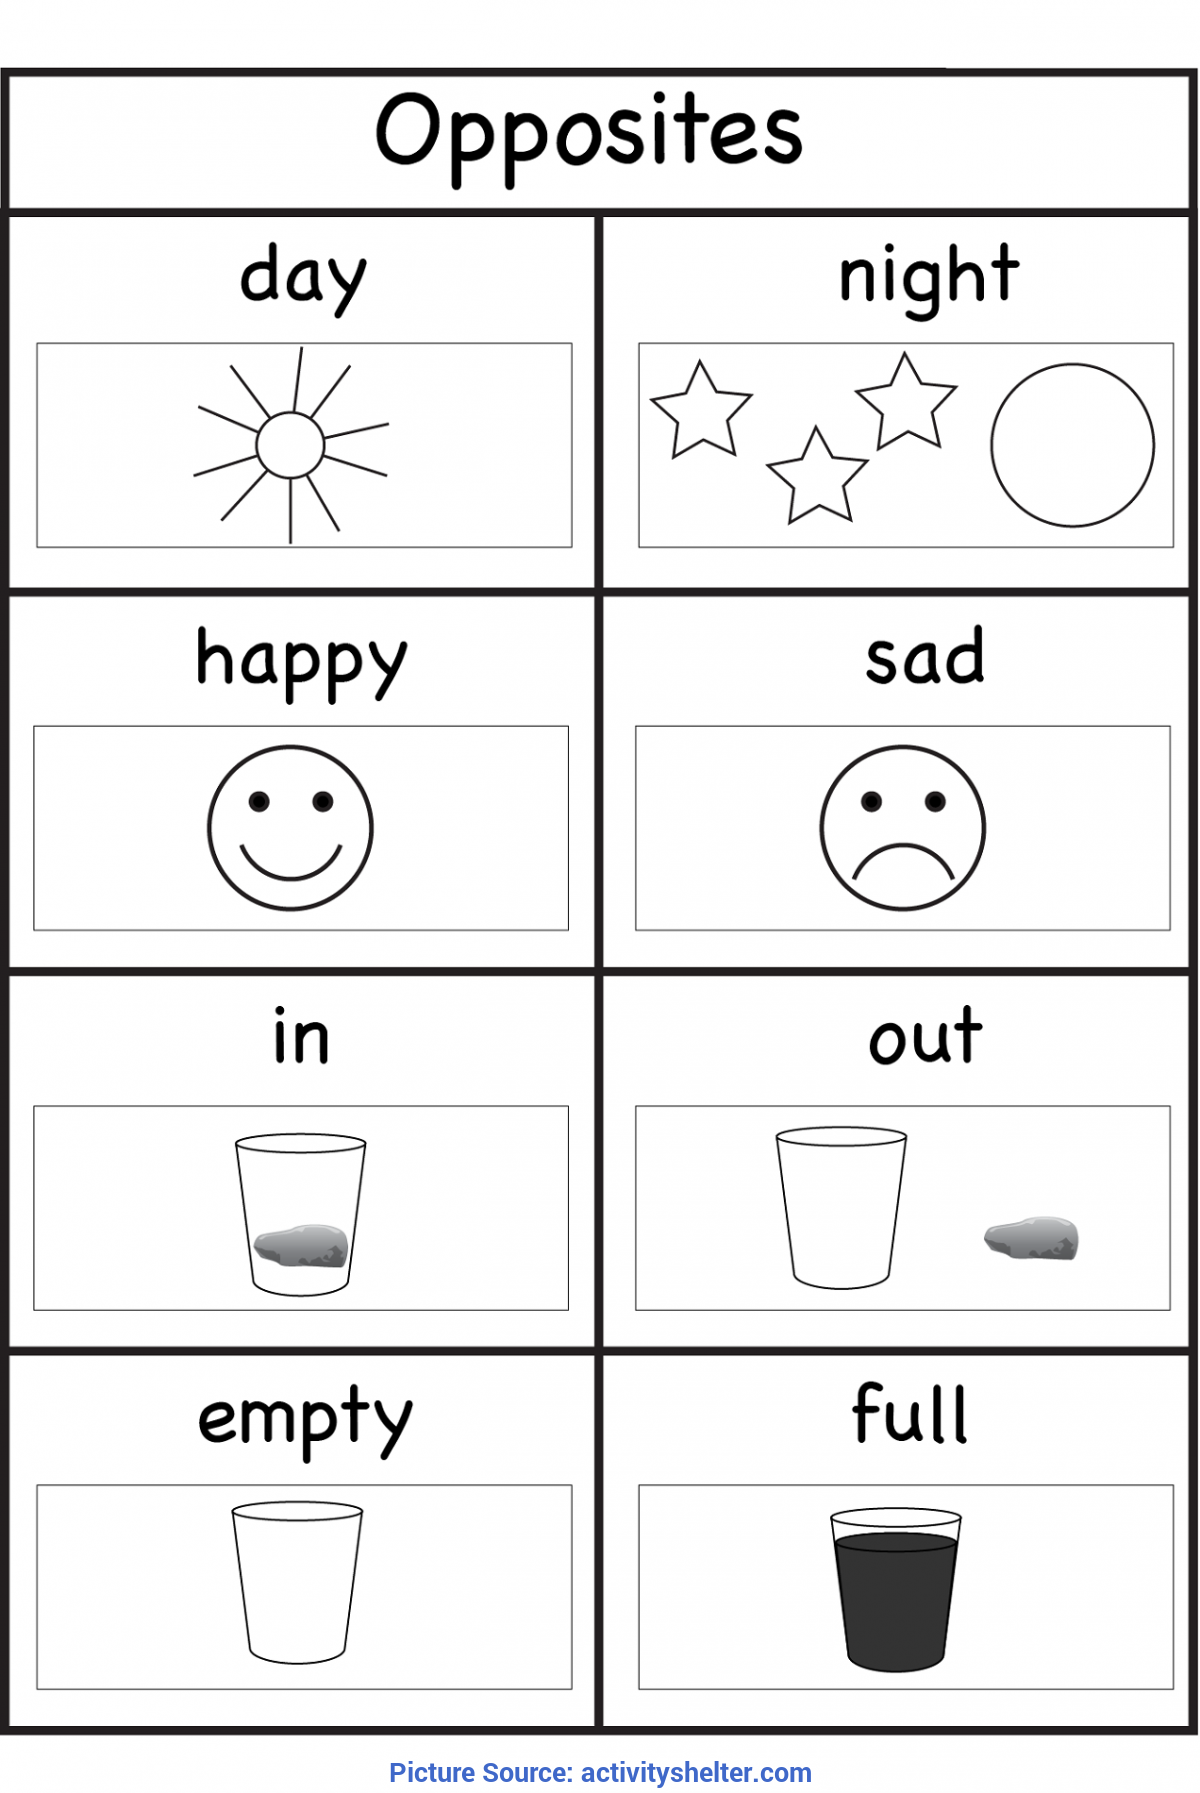 Typical Learning Resources For 3 Year Olds Worksheets For 5 Years Old Kids   Activity She